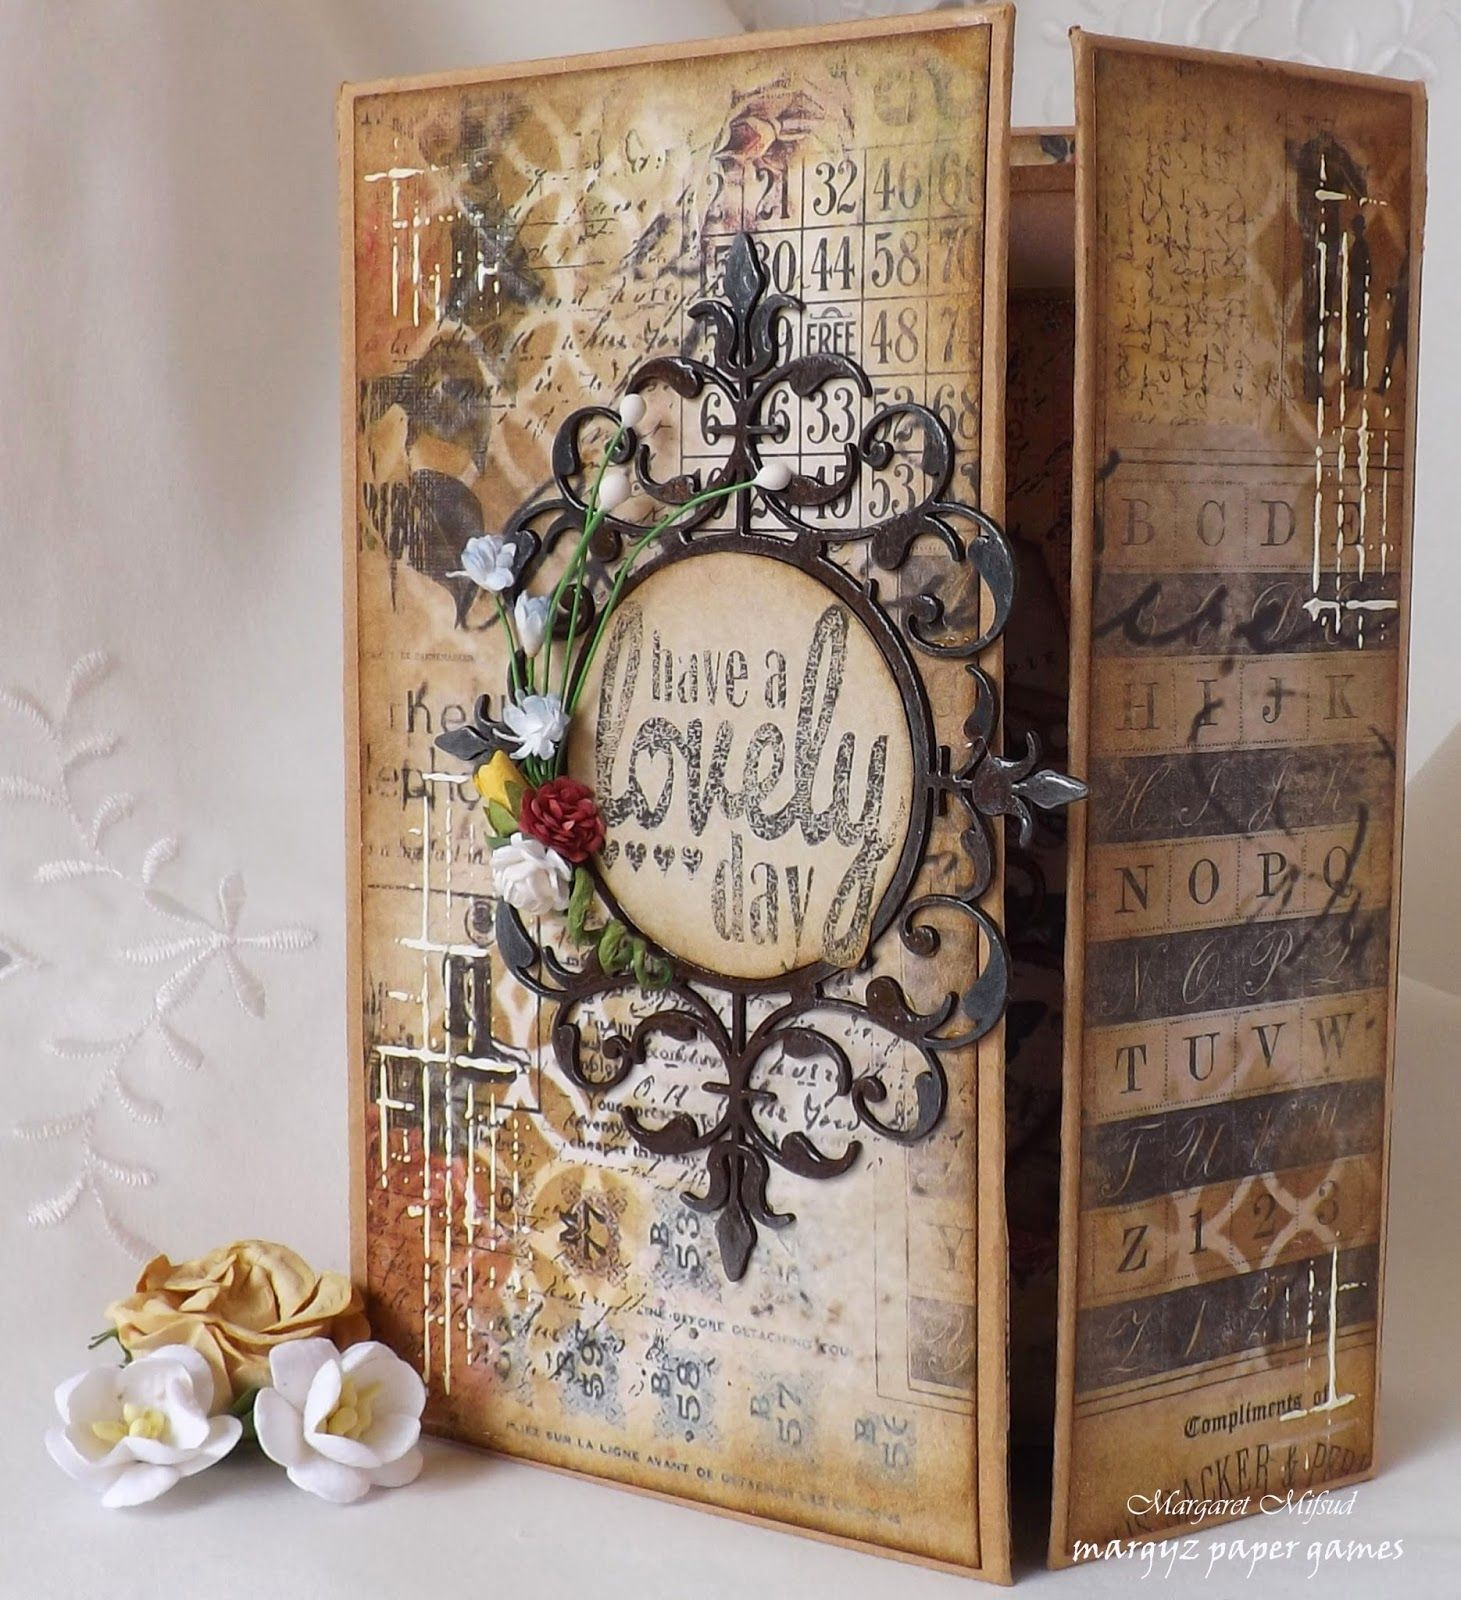 2Crafty Chipboard November Project